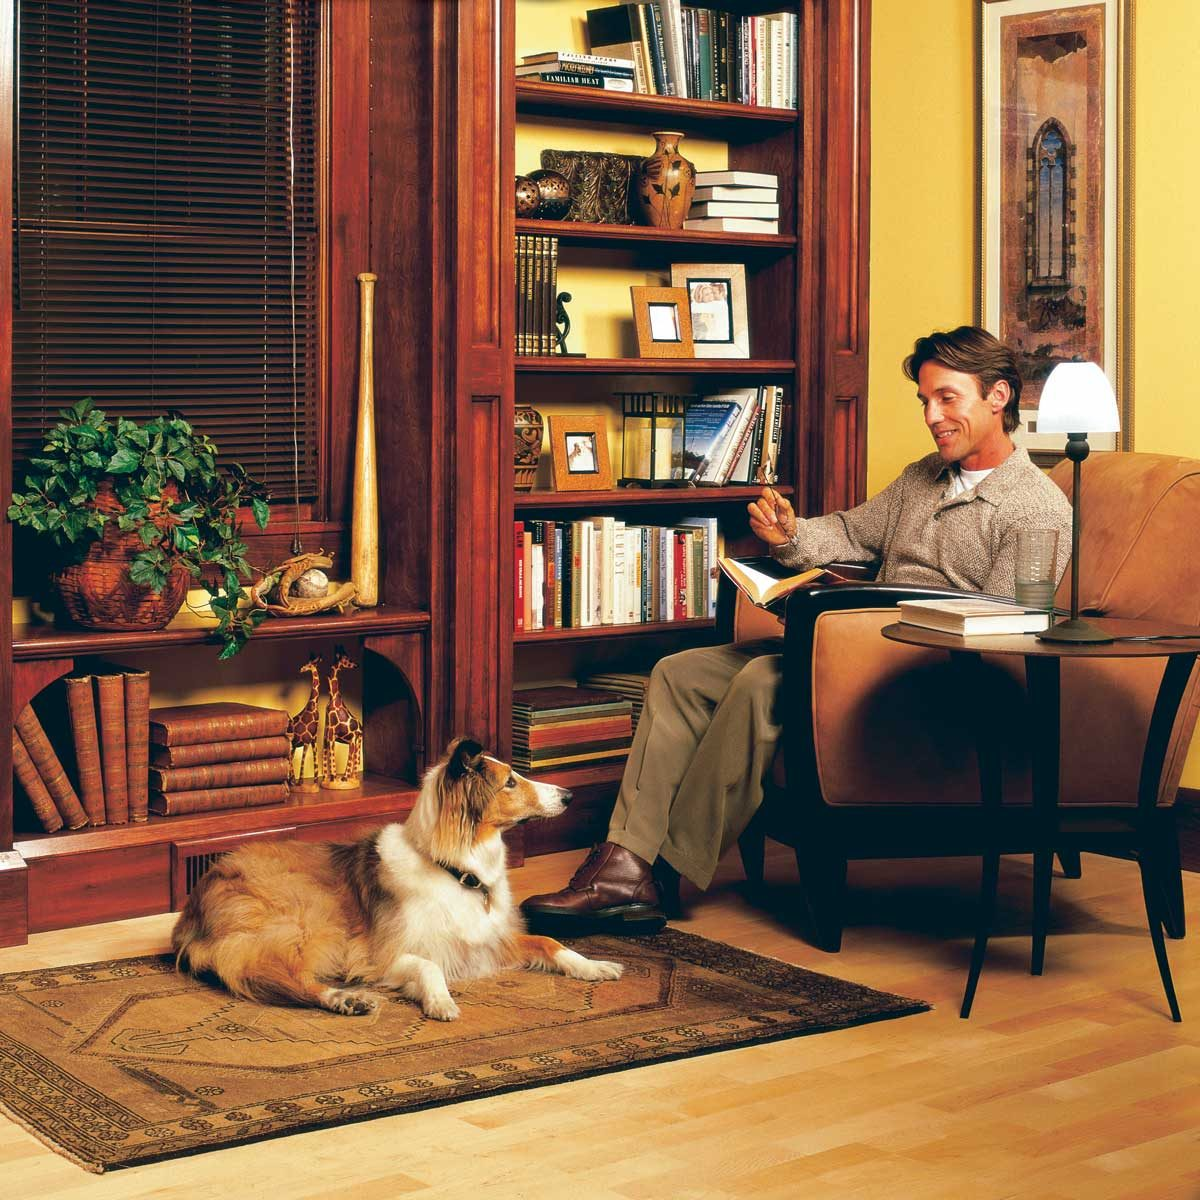 Window Seat Bookshelf How To Build A Built In Bookshelves The Family Handyman